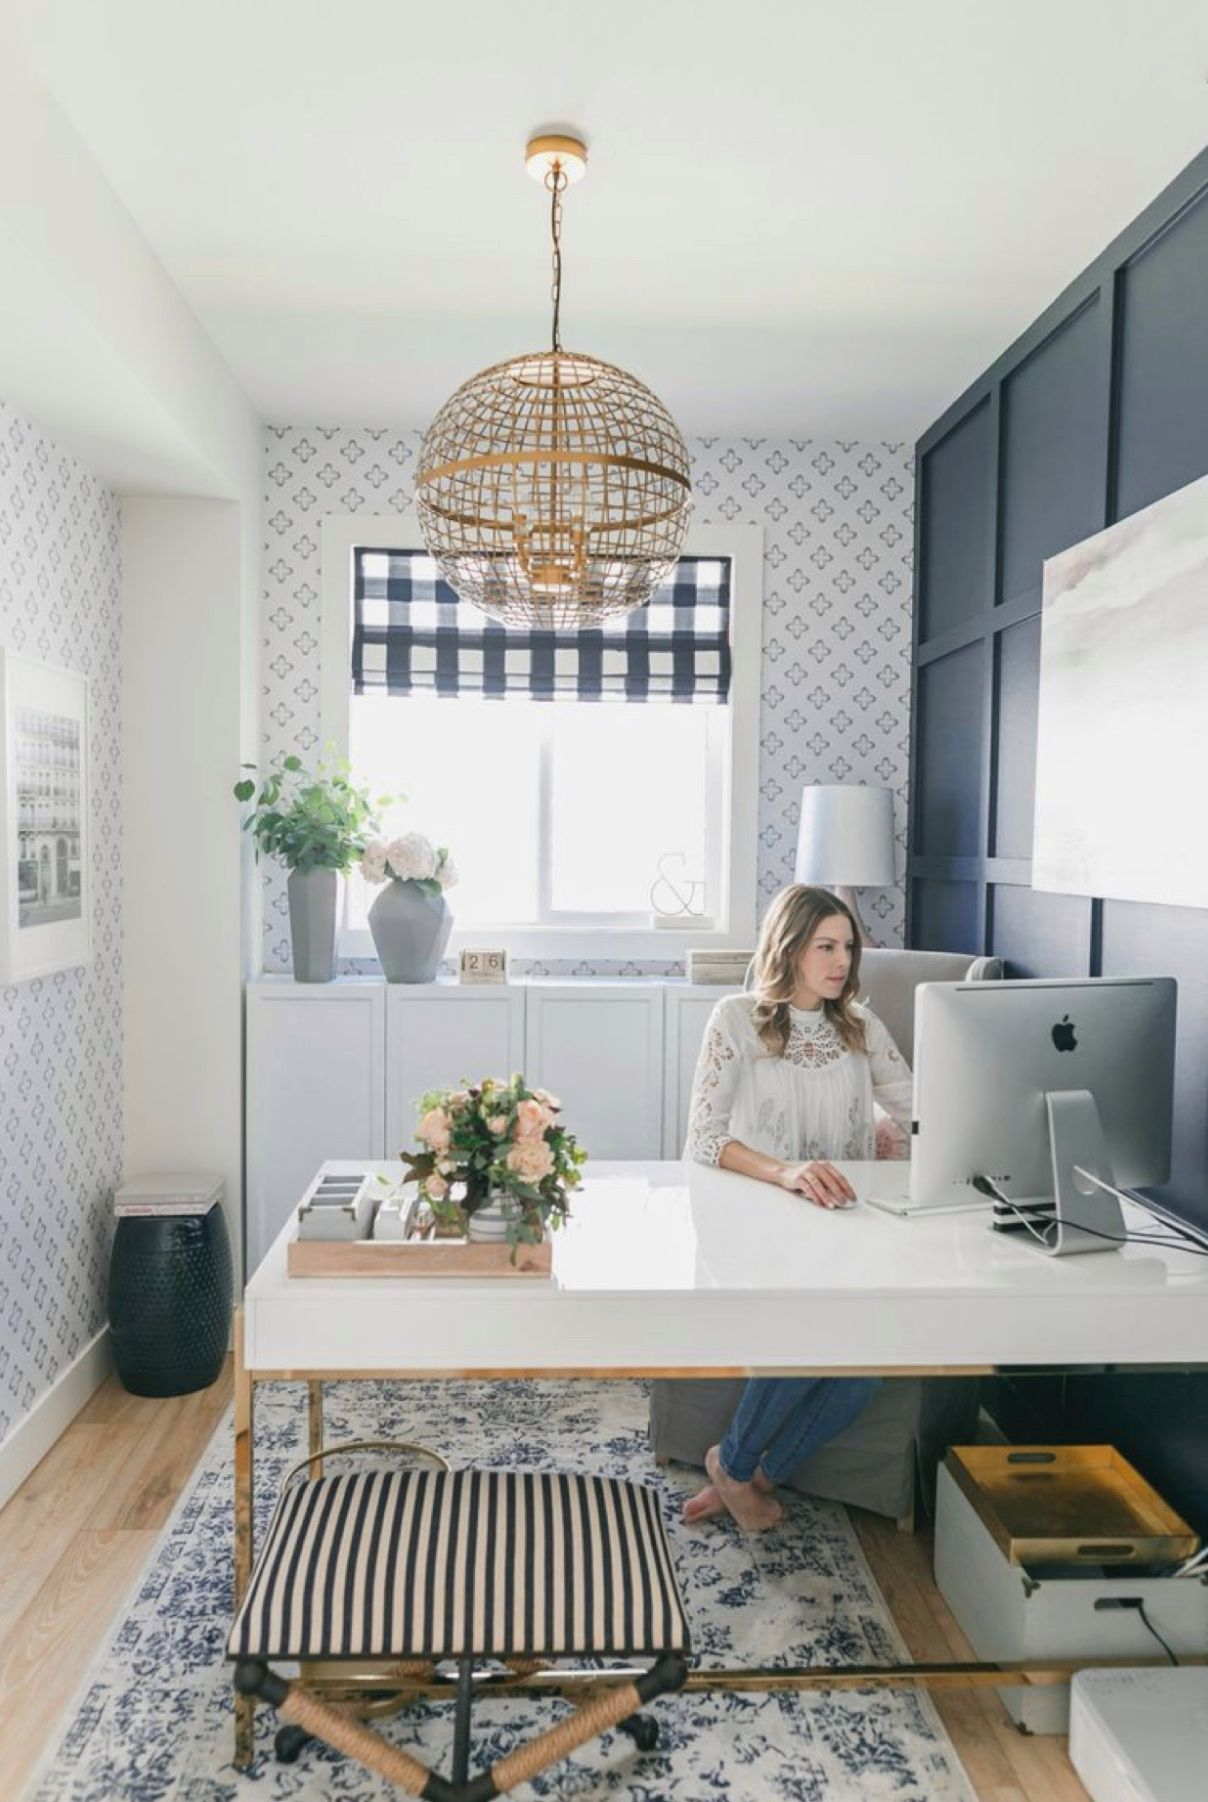 Need a desk right now? Choose from any of the 37 home office desks that will work for your child or you so you can work from home! Great for small workspaces or large offices, white and brass, or classic wood desks.